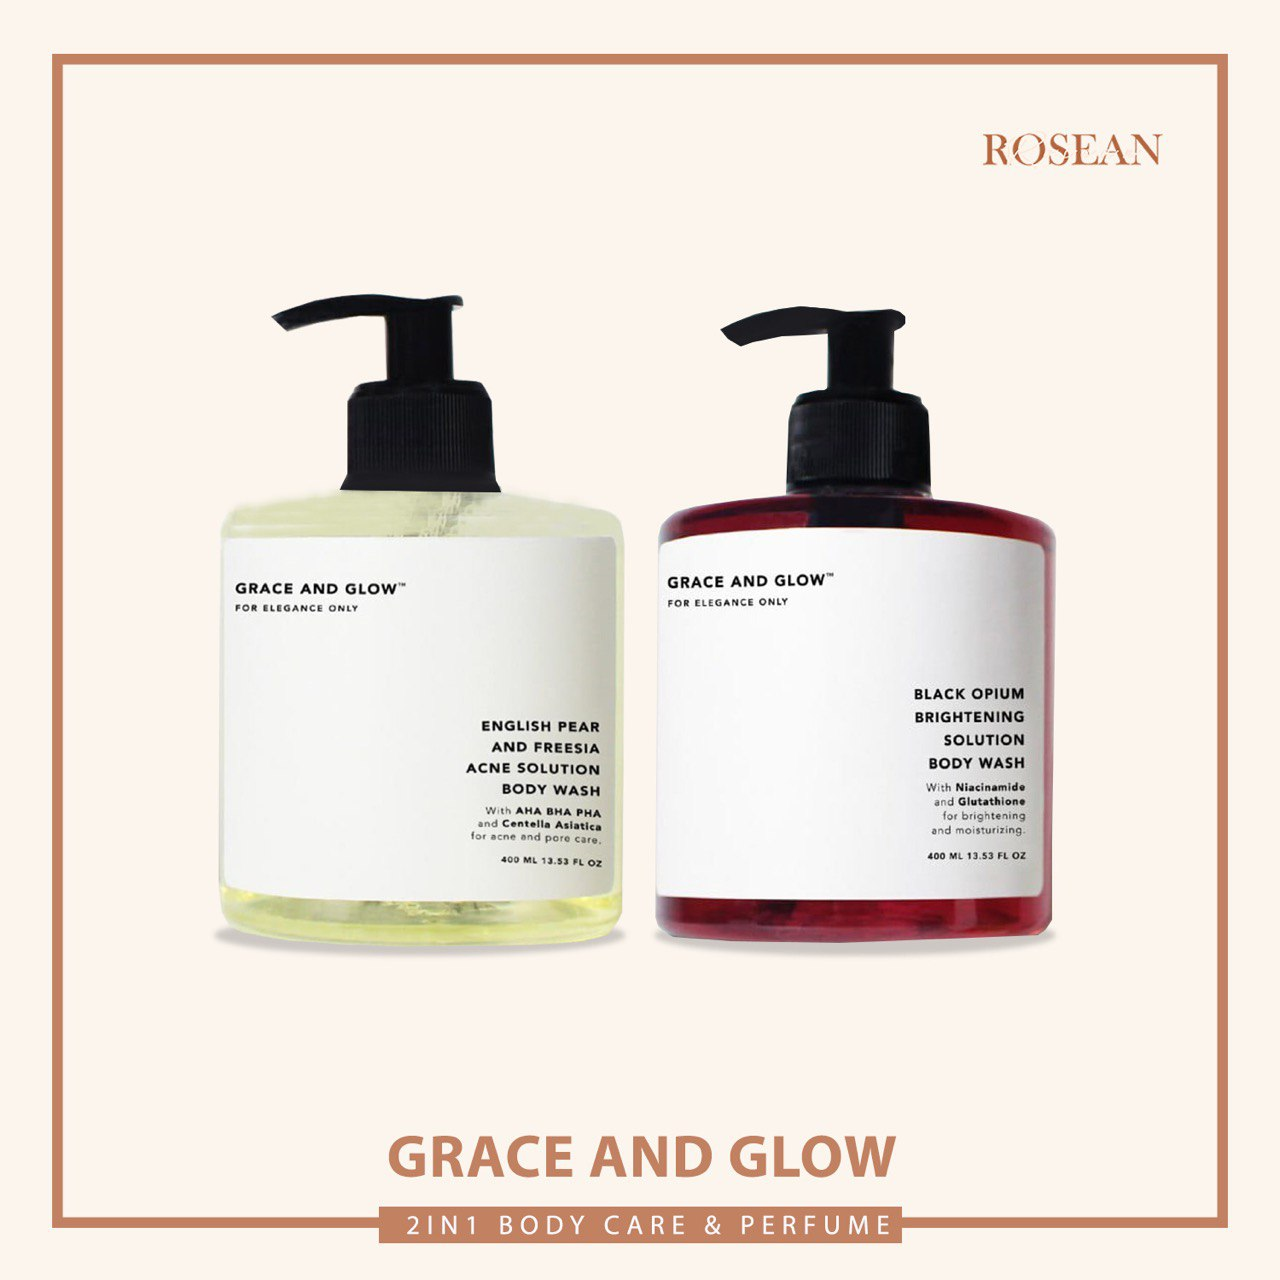 Grace and Glow Black Opium Brightening Booster / English Pear and Freesia Anti Acne Body Wash